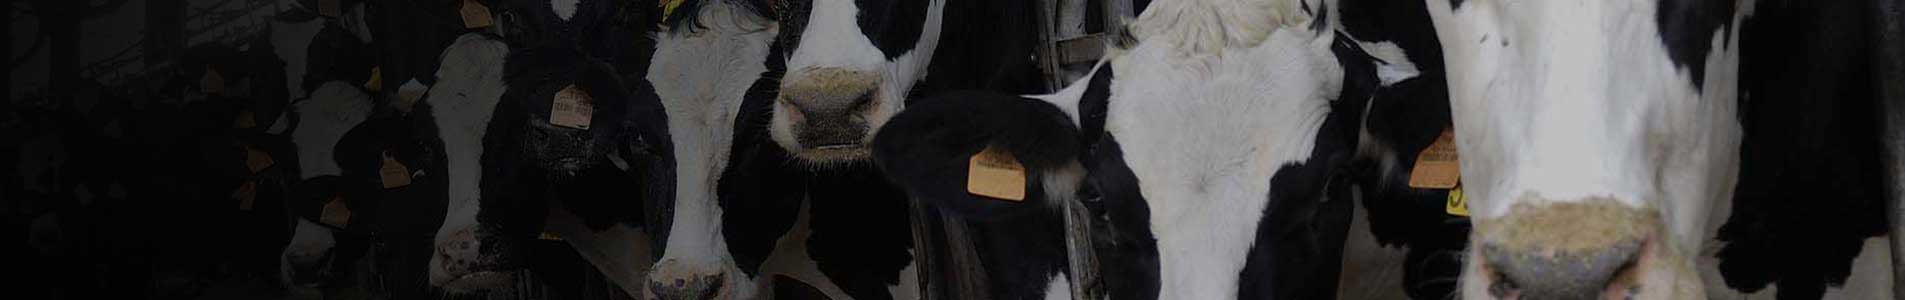 dairy farm management